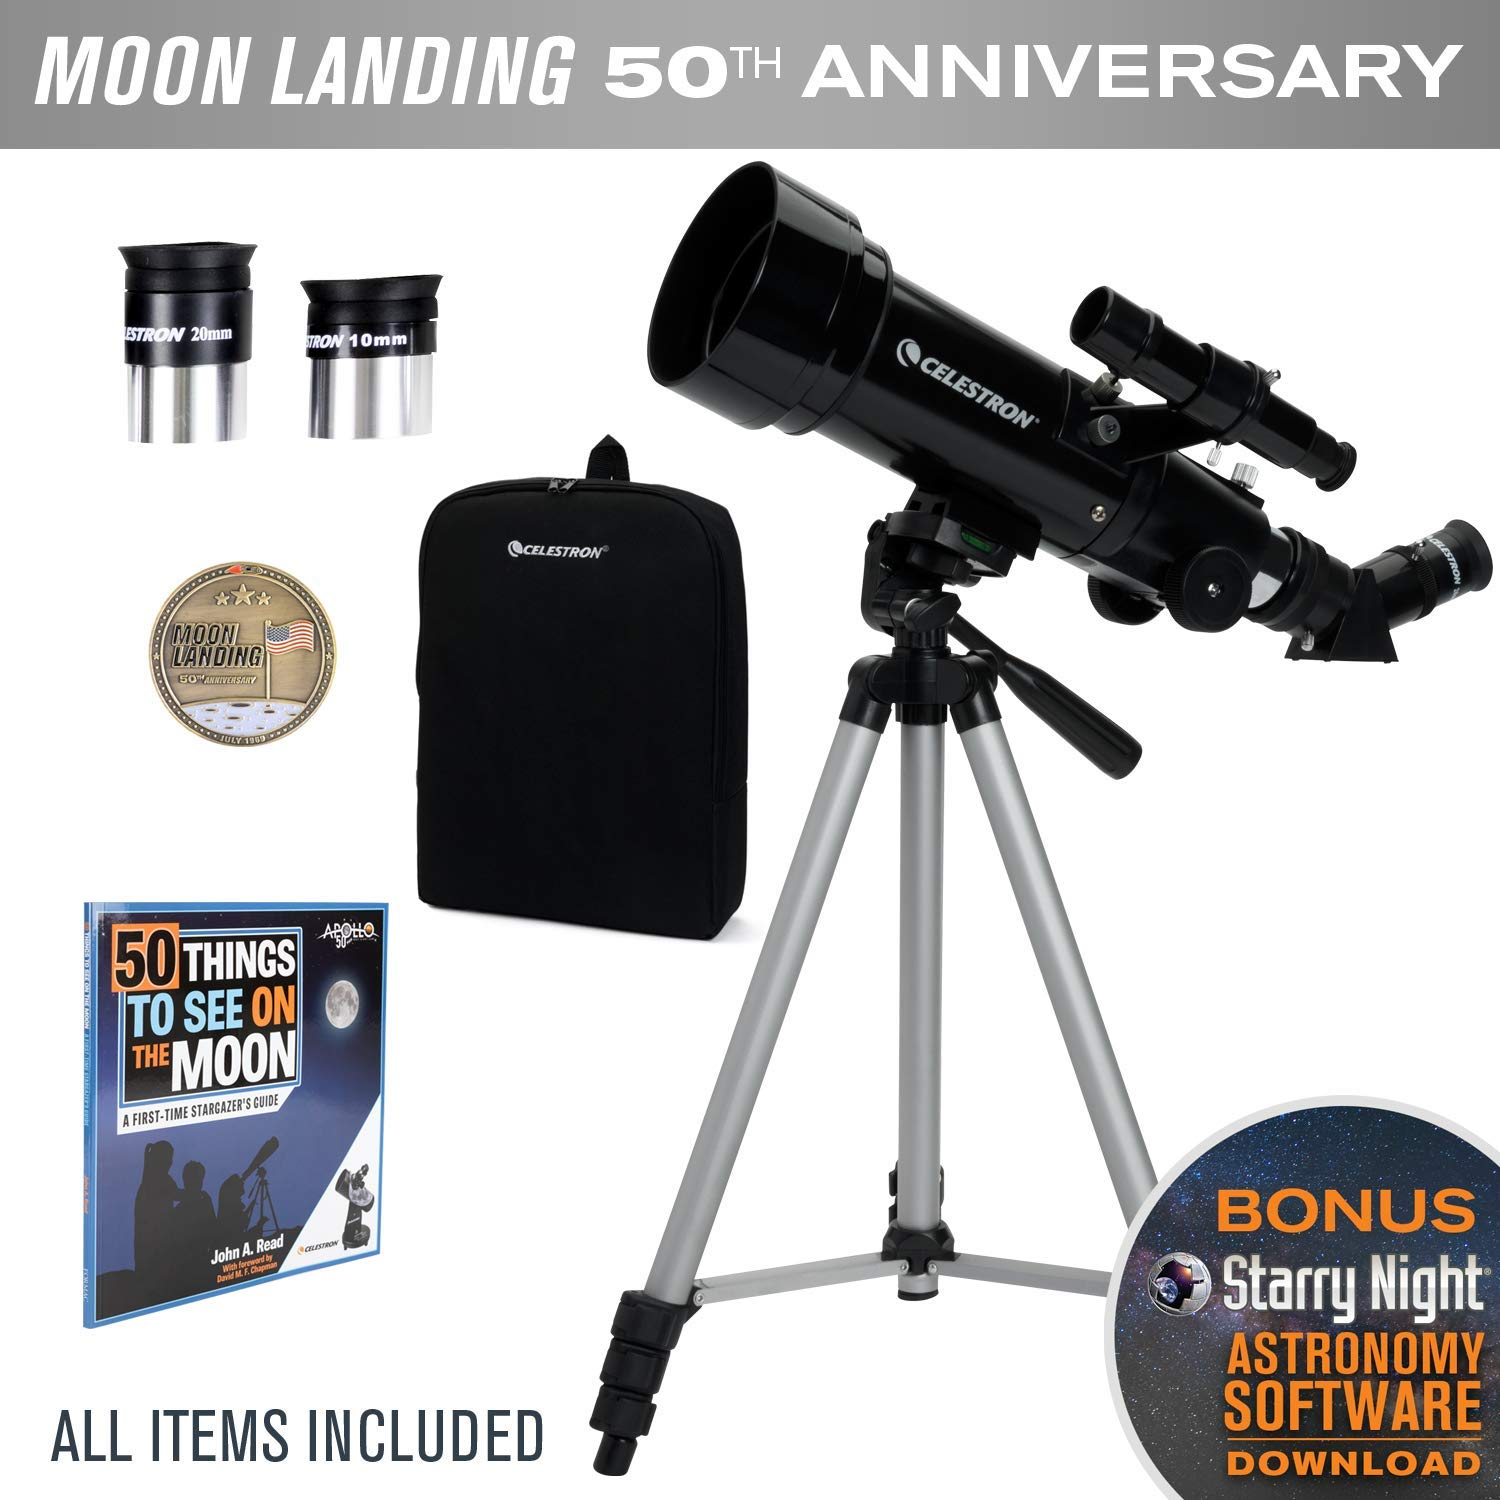 Celestron Travel Scope 70 Telescope - Limited Edition Apollo 11 50th Anniversary Bundle with Commemorative Coin and Book (Renewed) by Nordic Pure